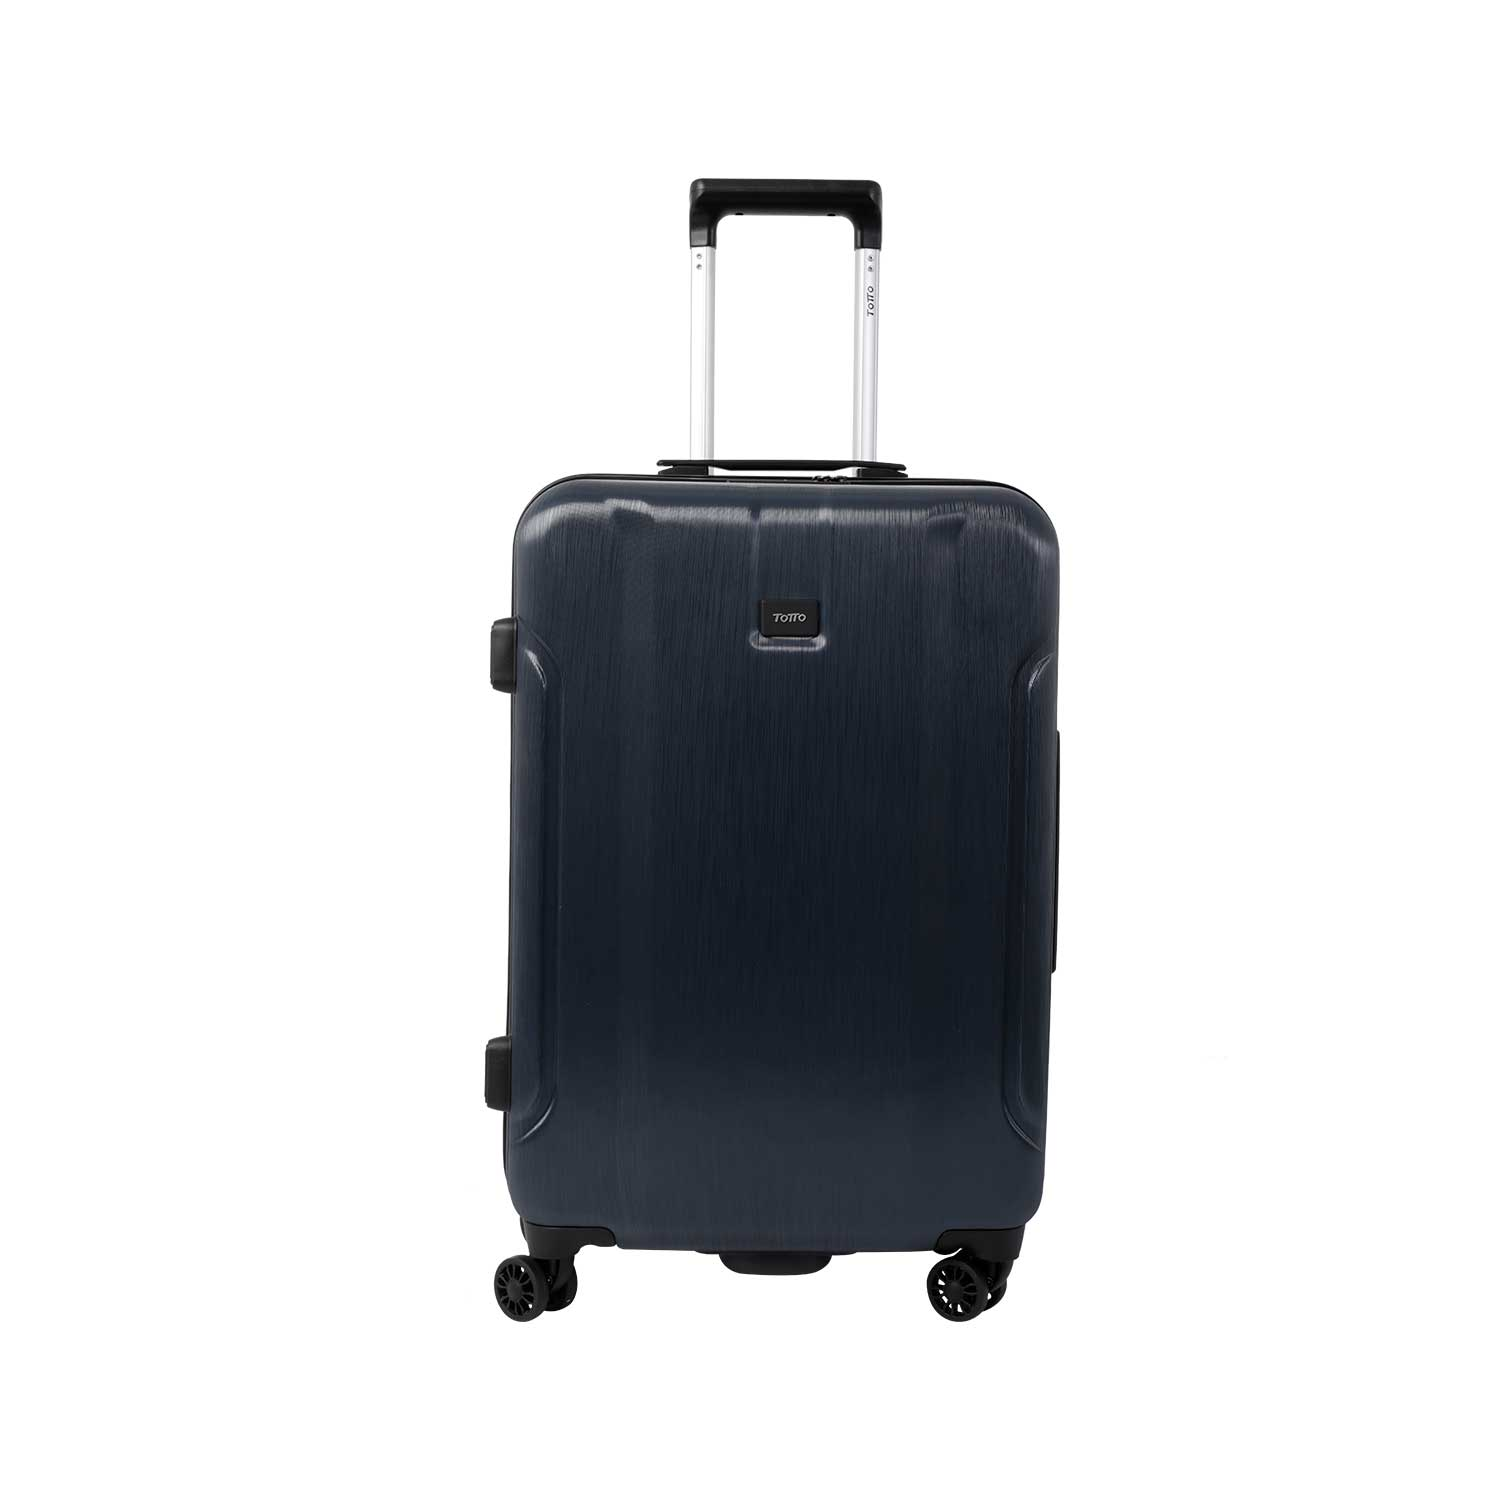 Maleta 4 ruedas mediana color azul navy - Nishy